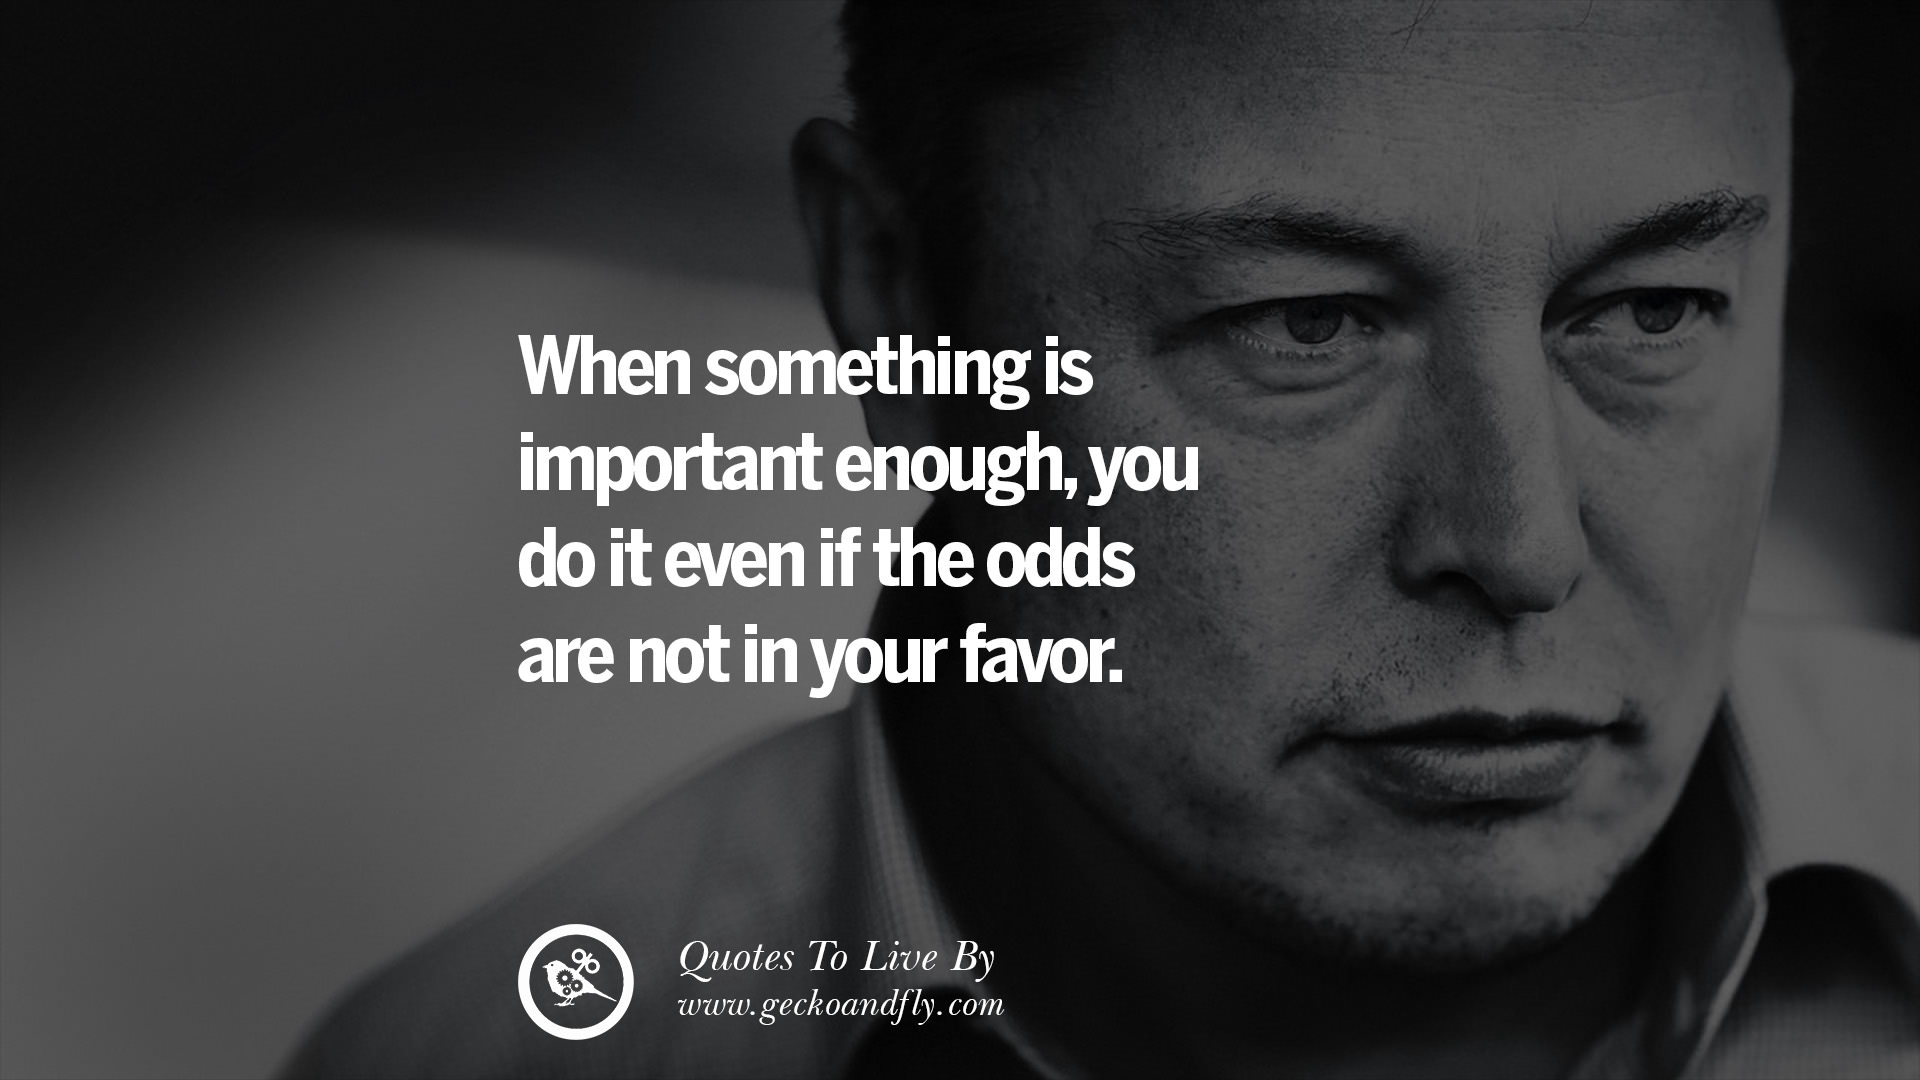 when something is important enough you do it even if the odds are not in your favor